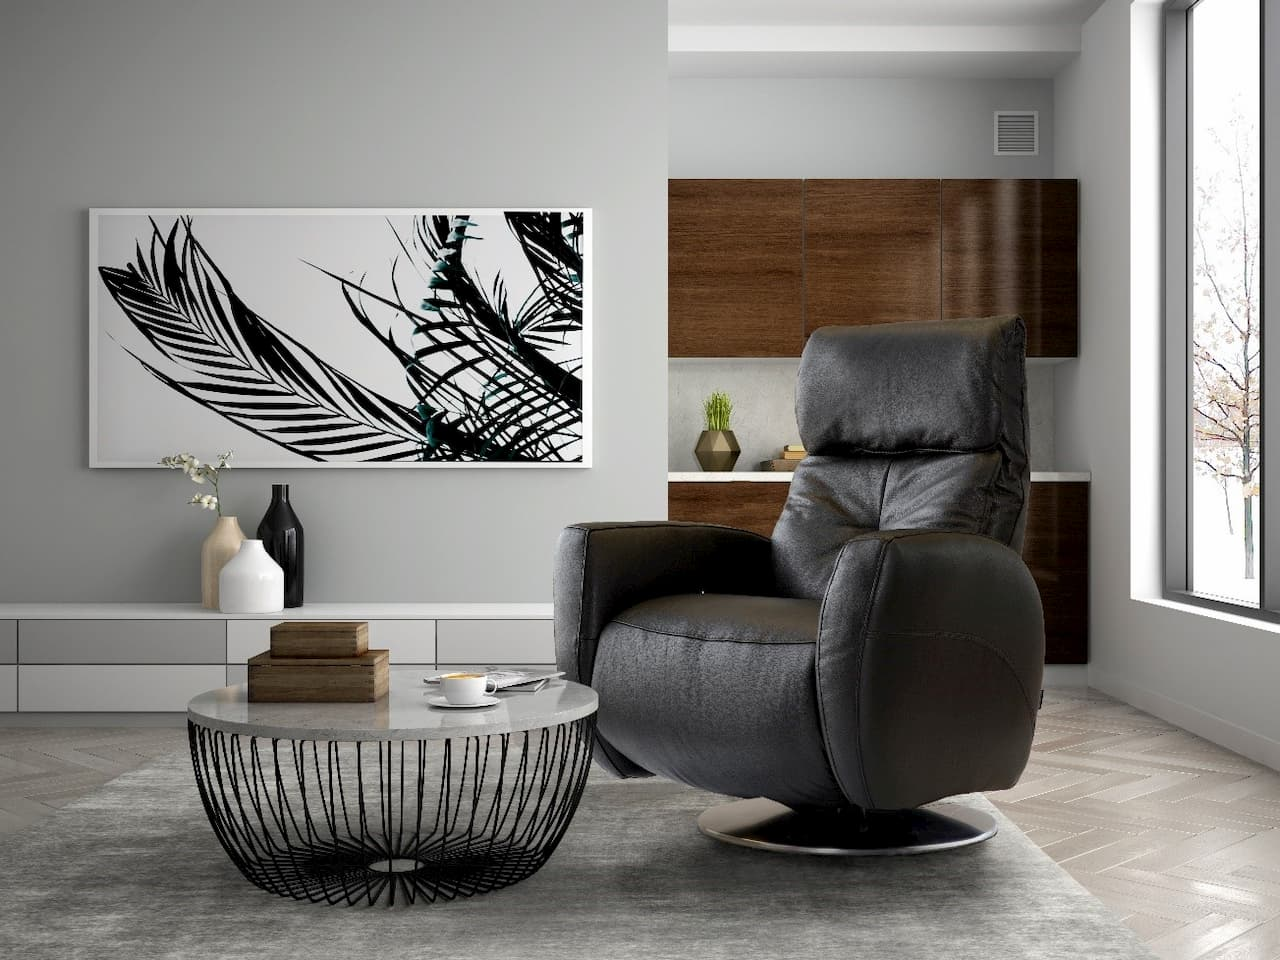 Find the best recliner chairs in Harris Furnishings